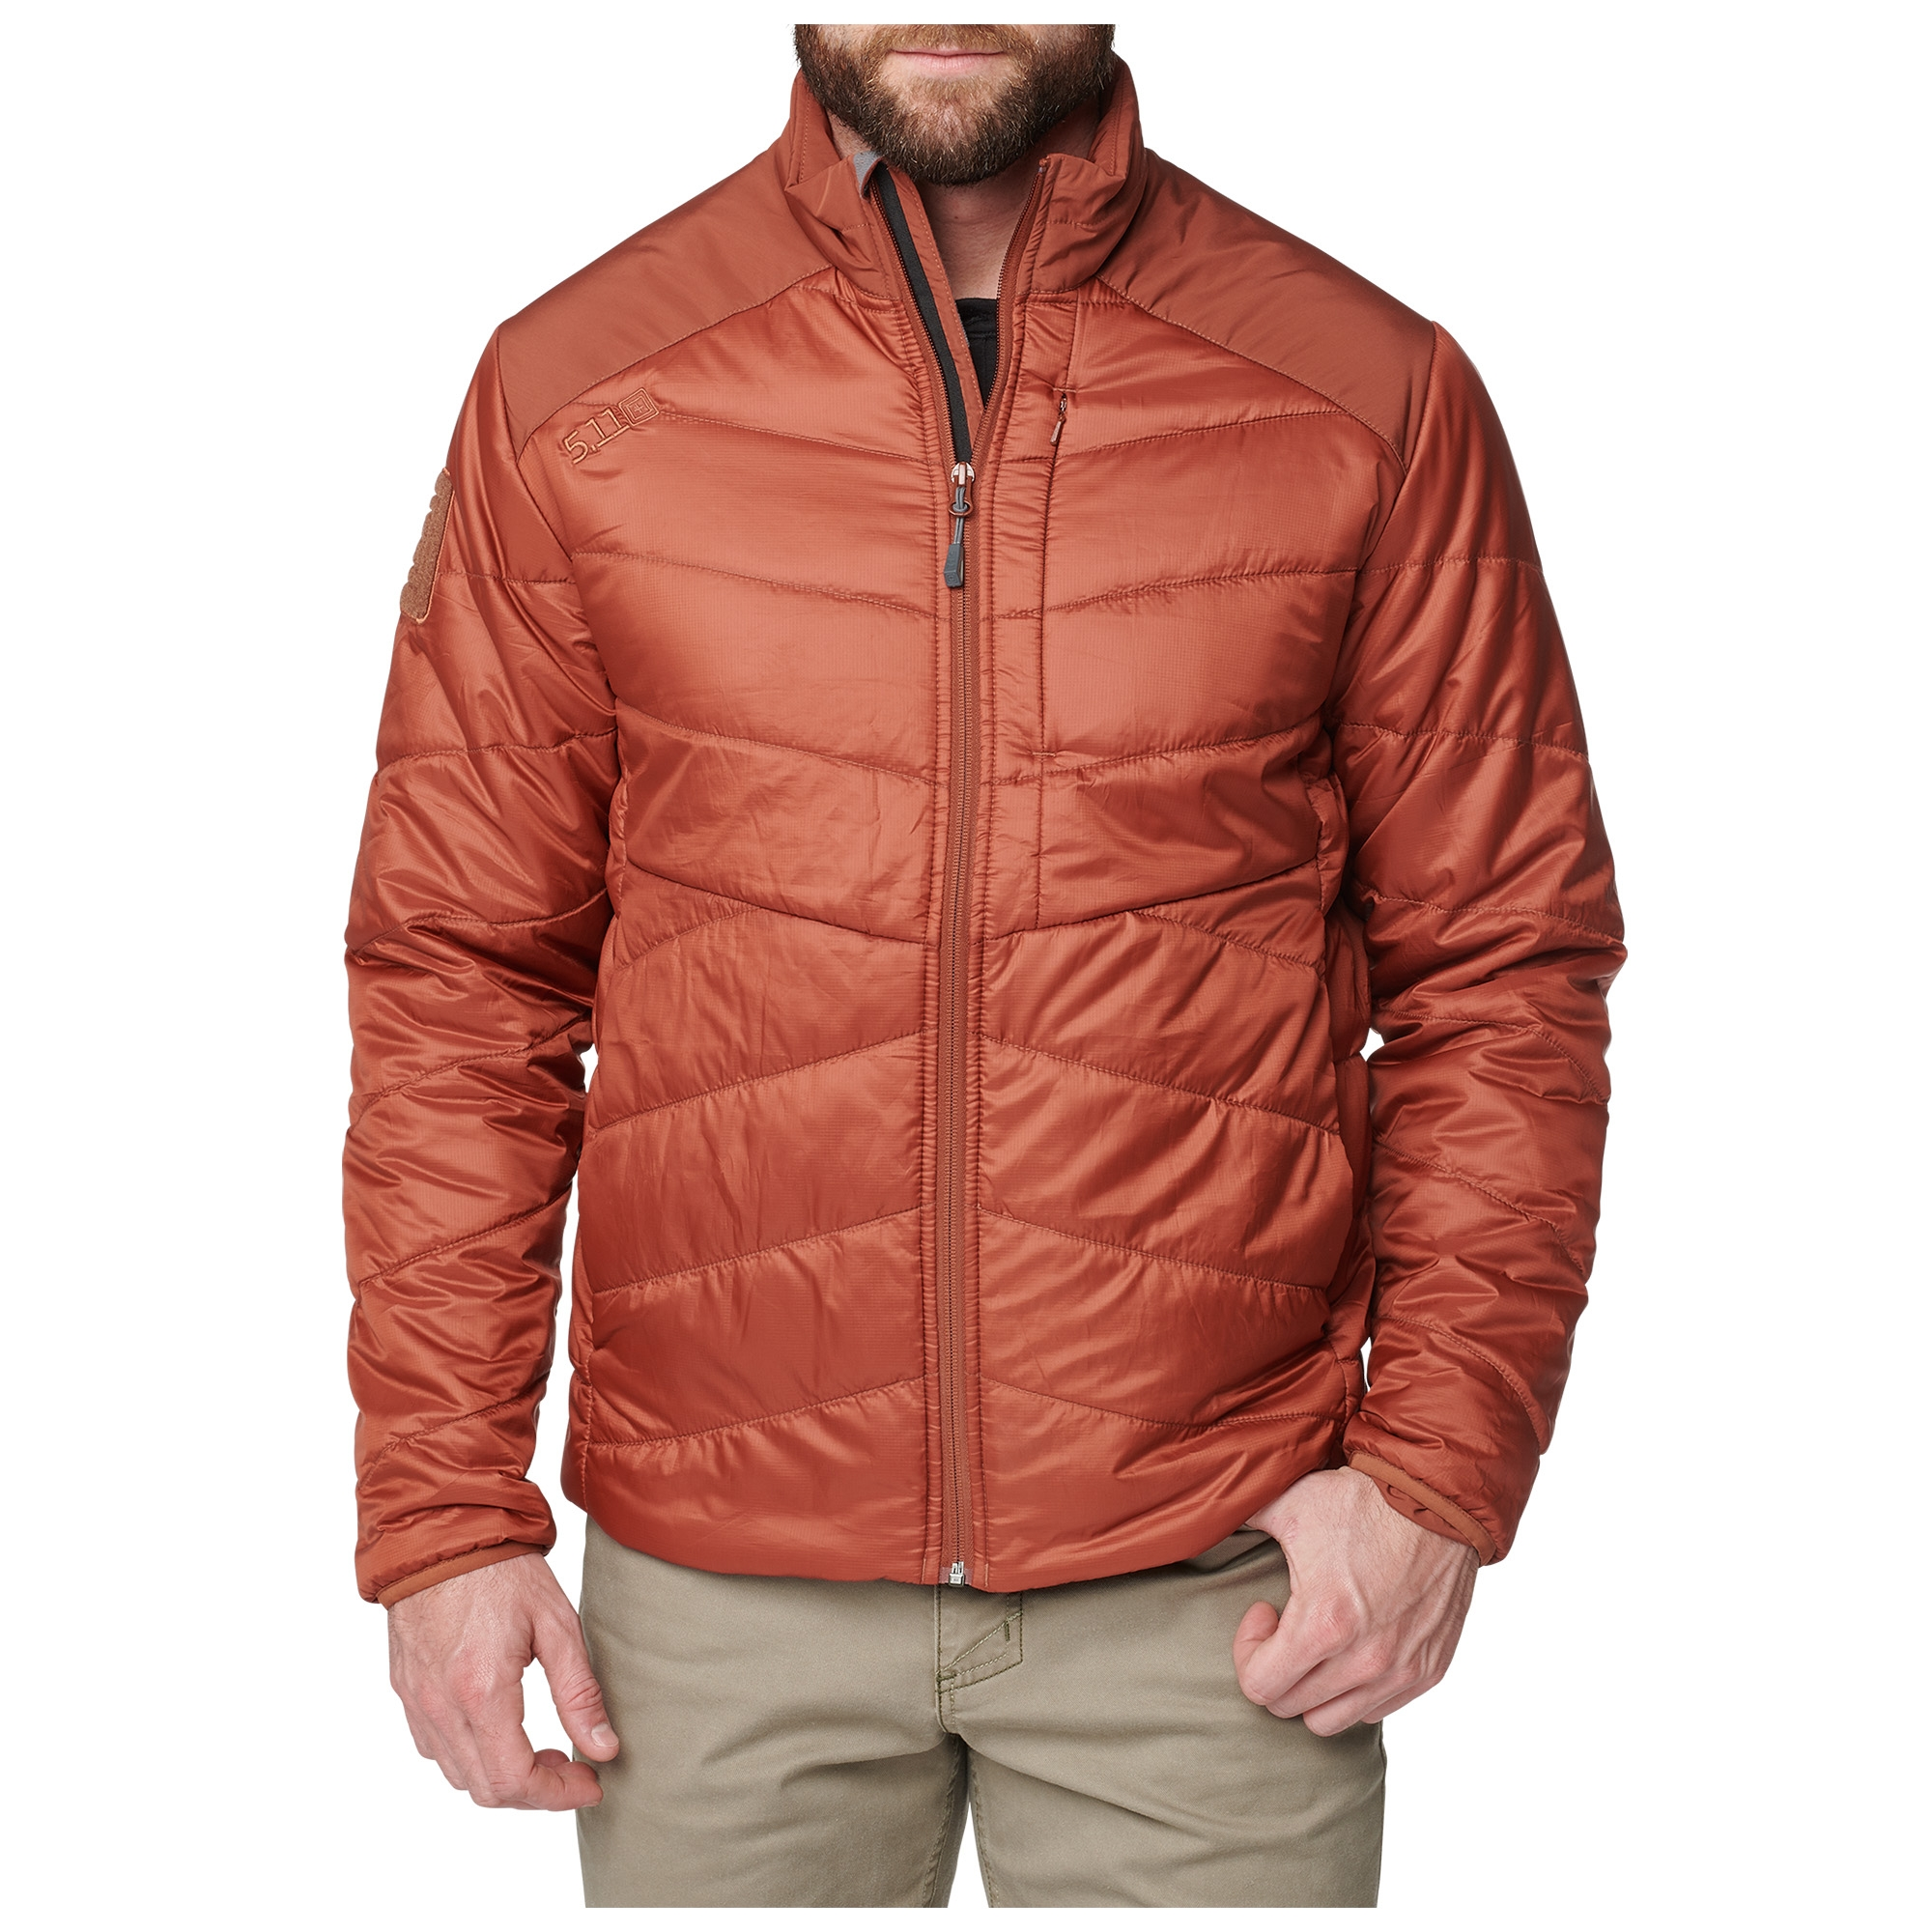 5.11 Tactical Men Peninsula Insulator Packable Jacket, Size XS (CCW Concealed Carry)